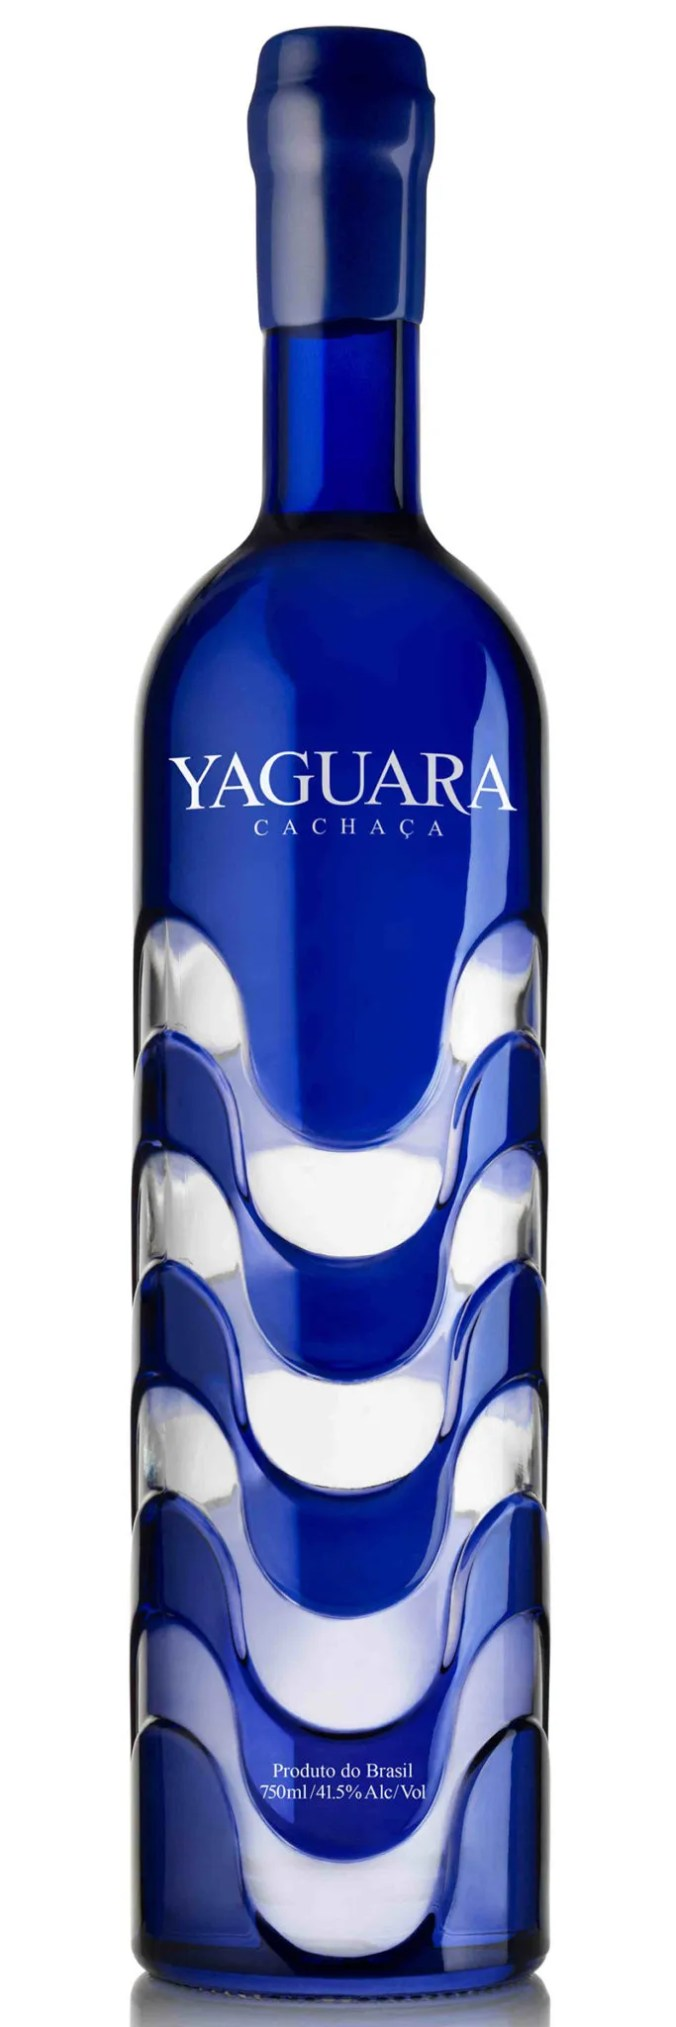 Yaguara Blended Cachaça from Brazil is distilled from organic sugar cane in traditional alambique copper stills and blended for perfect balance.